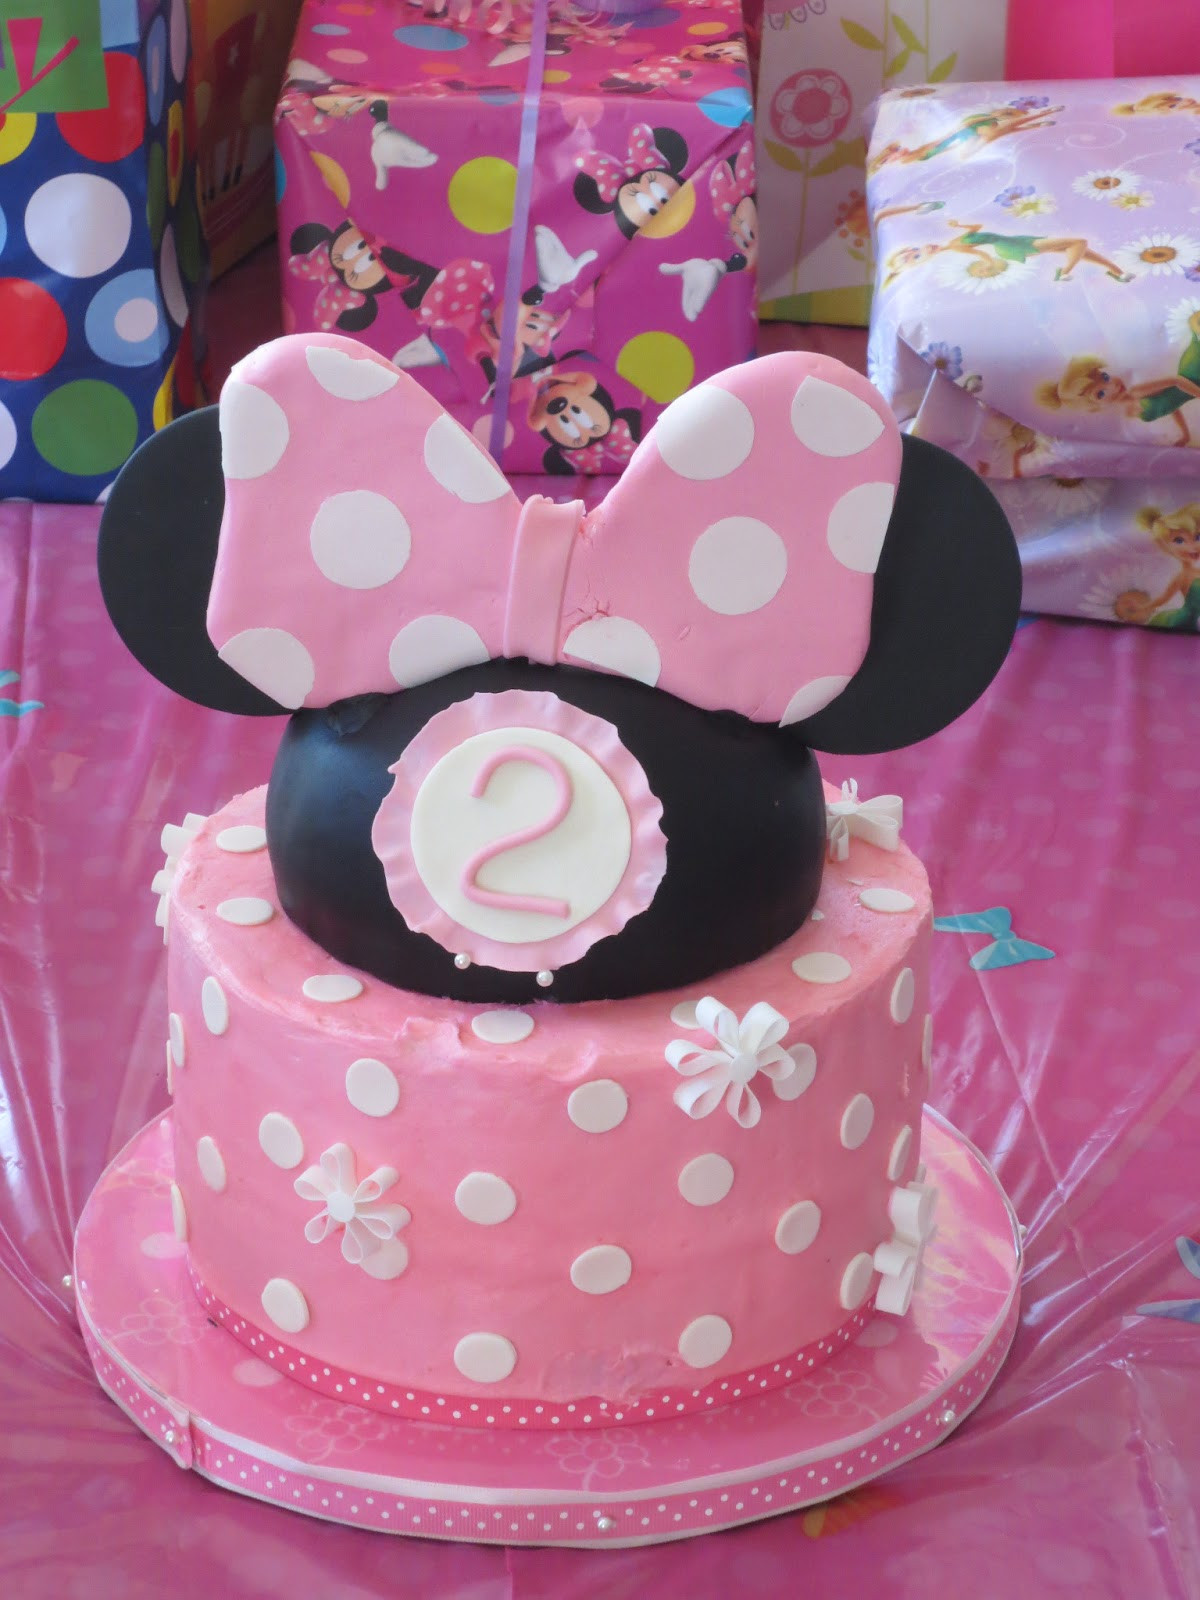 Best ideas about 2nd Birthday Cake . Save or Pin J s Cakes Minnie Mouse Second Birthday Cake Now.